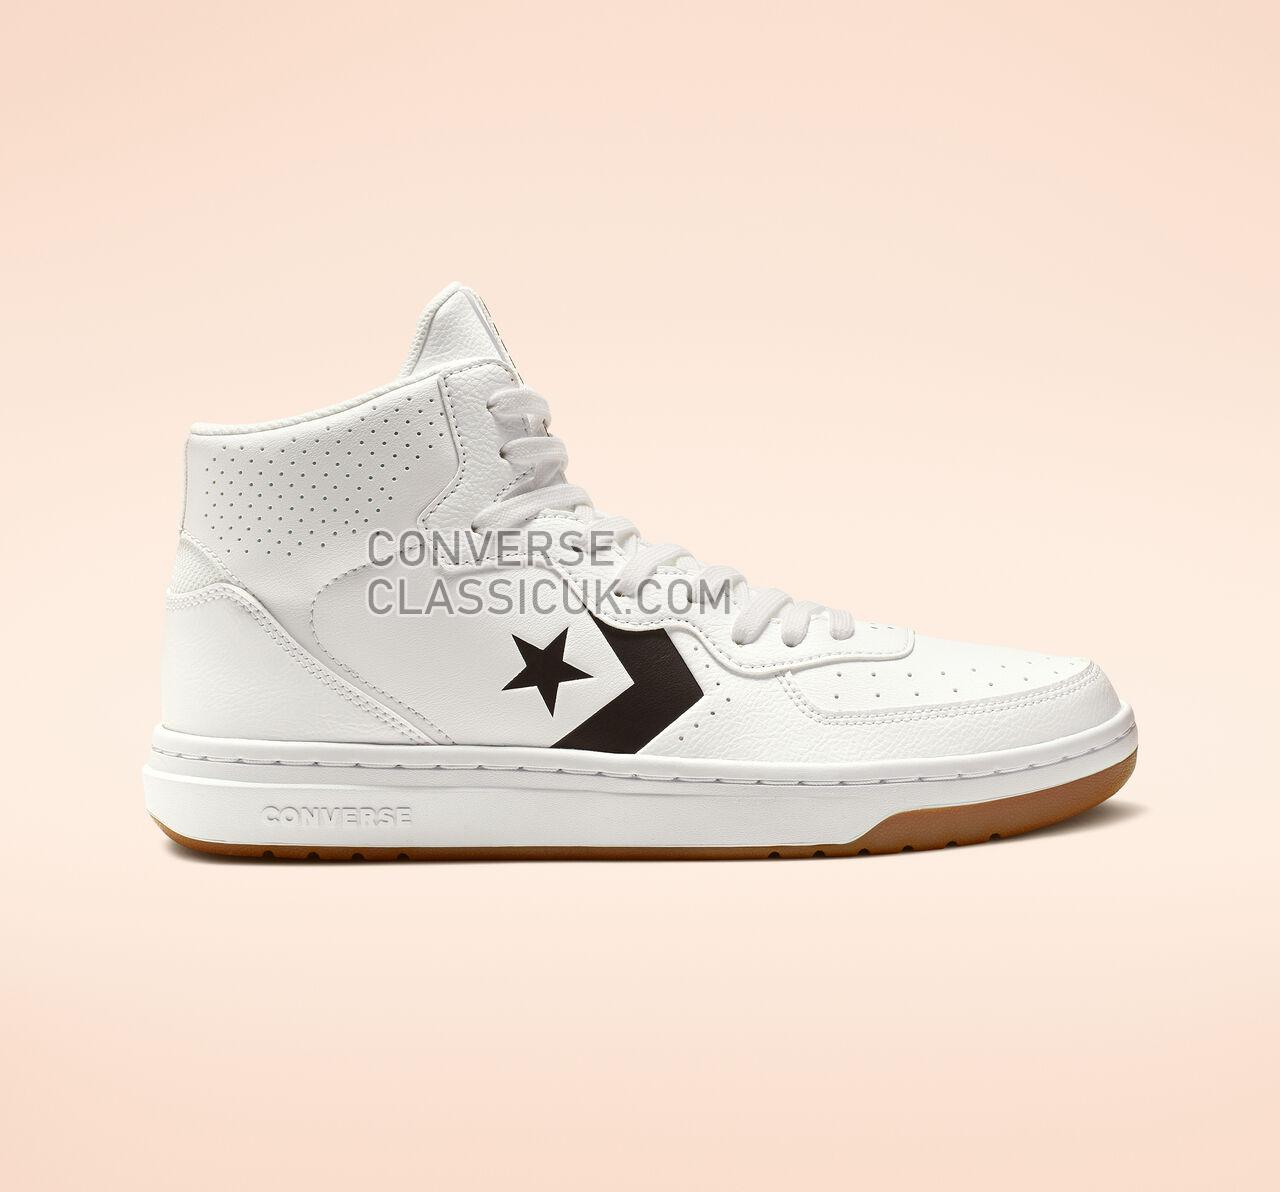 Converse Rival Mid Mens Womens Unisex 164890C White/Black/White Shoes